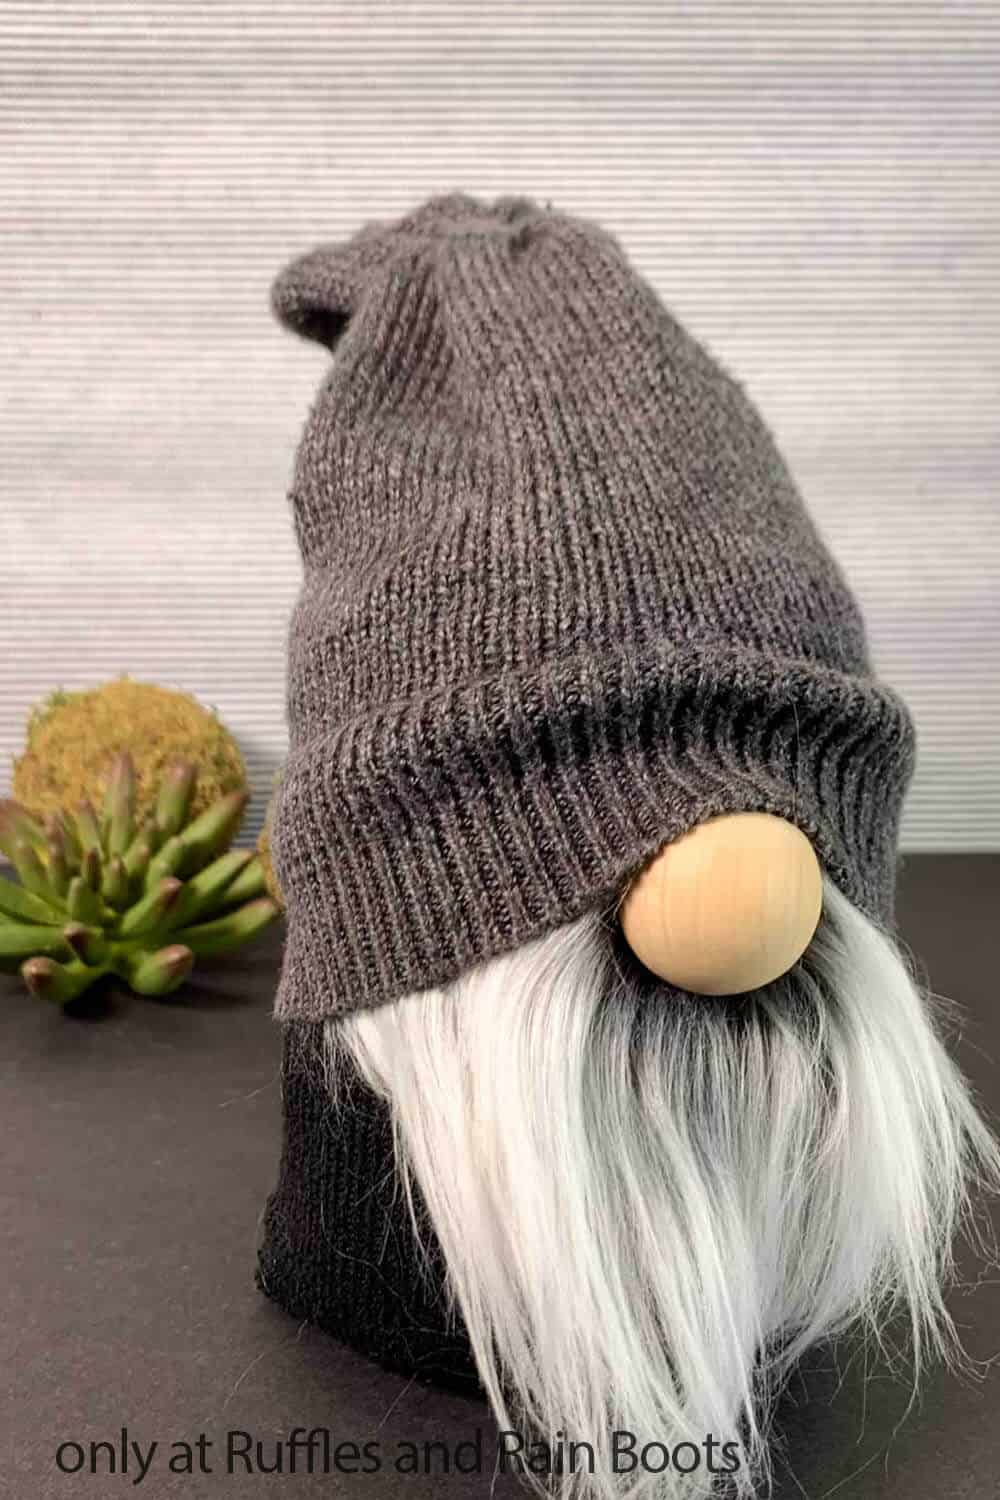 stable bodied gnome with a sweater hat